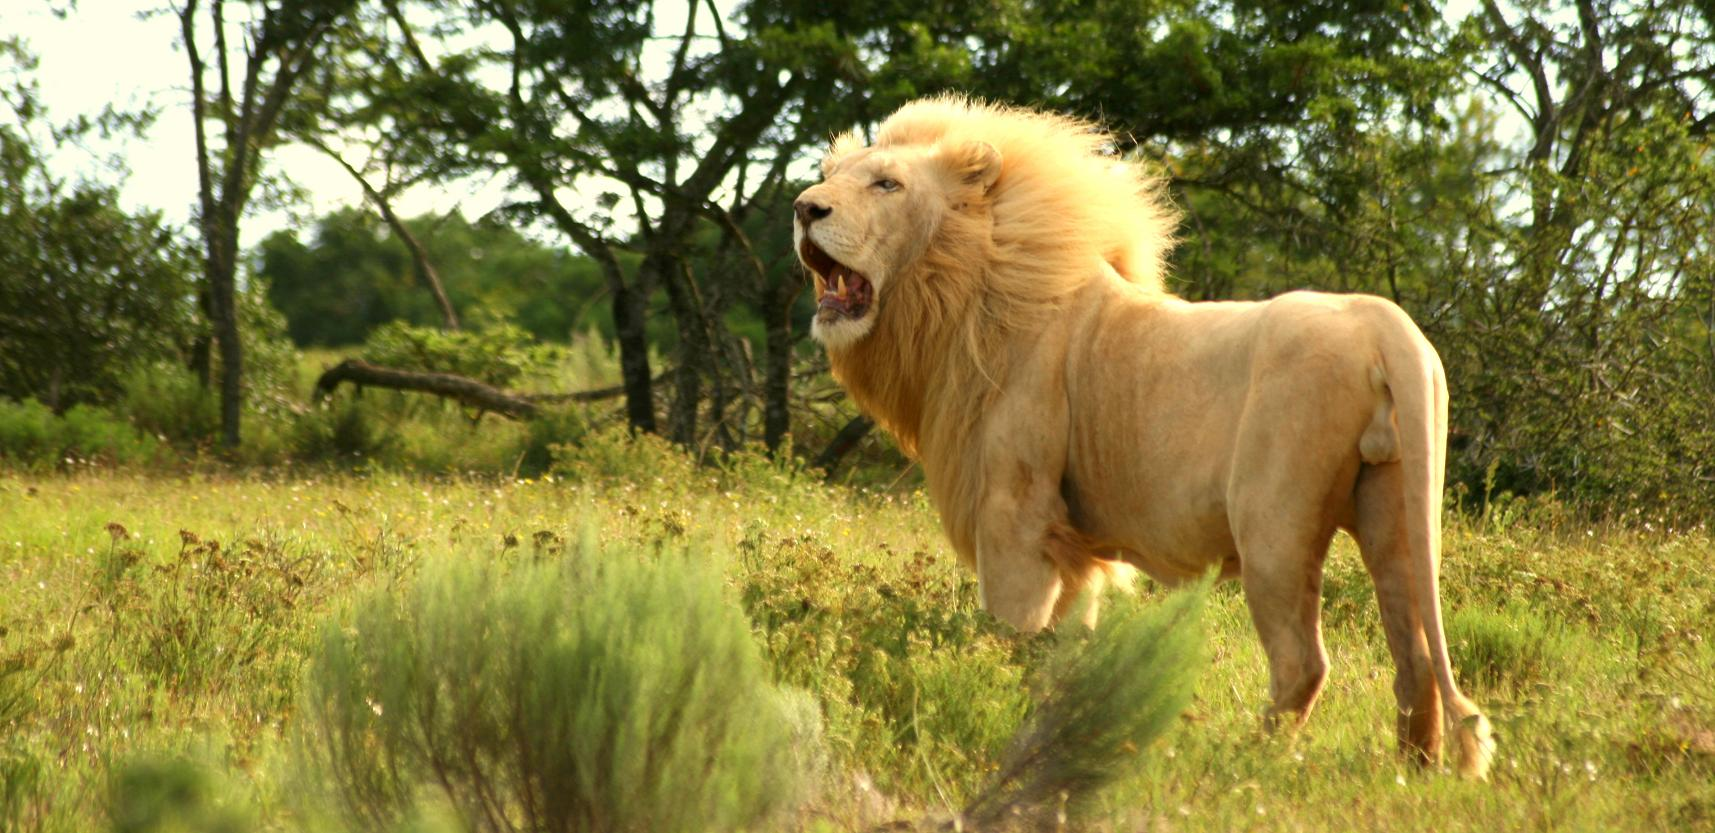 One of the most amazing sights in South Africa, a white lion roaring on the Pumba Game Reserve